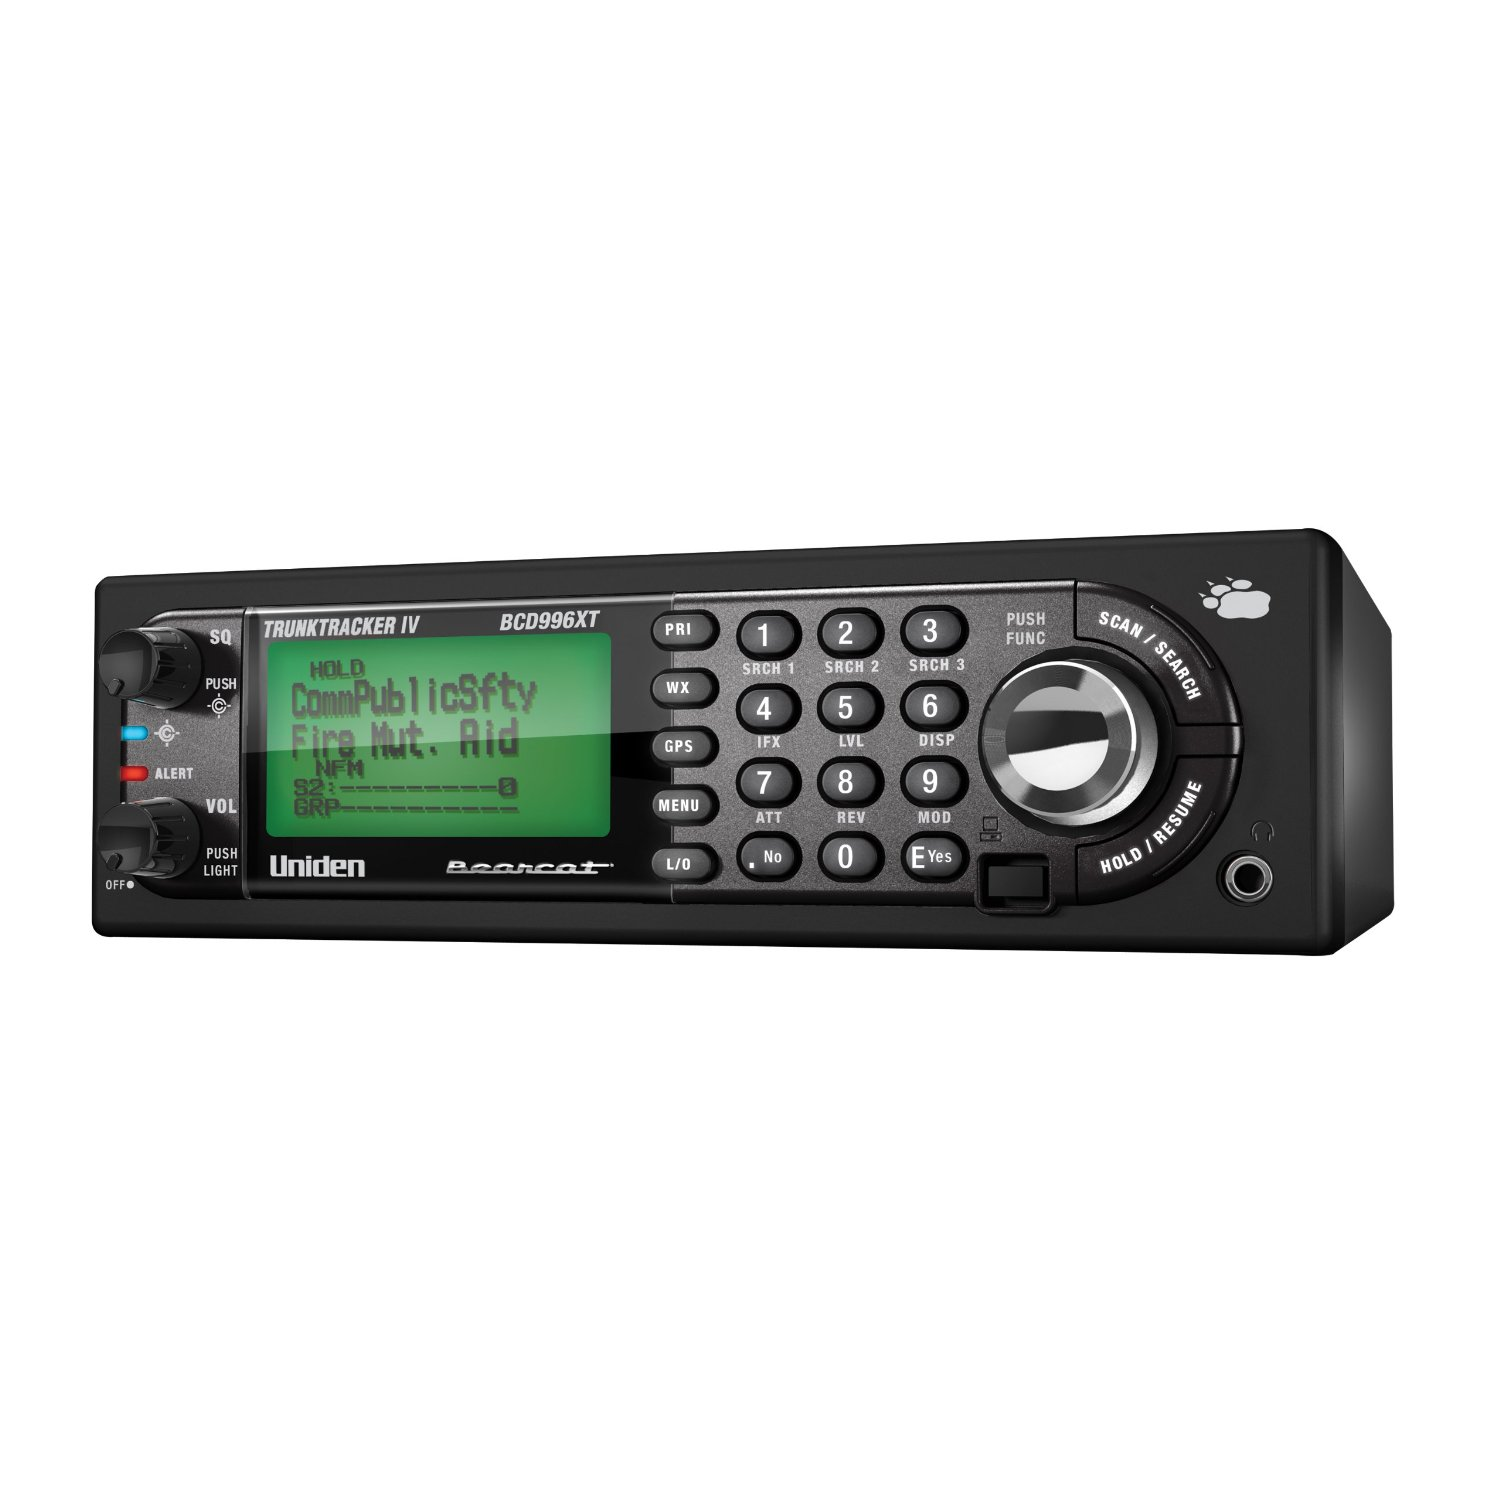 Uniden Digital Mobile Scanner with 25,000 Channels and GPS Support (BCD996XT) Review